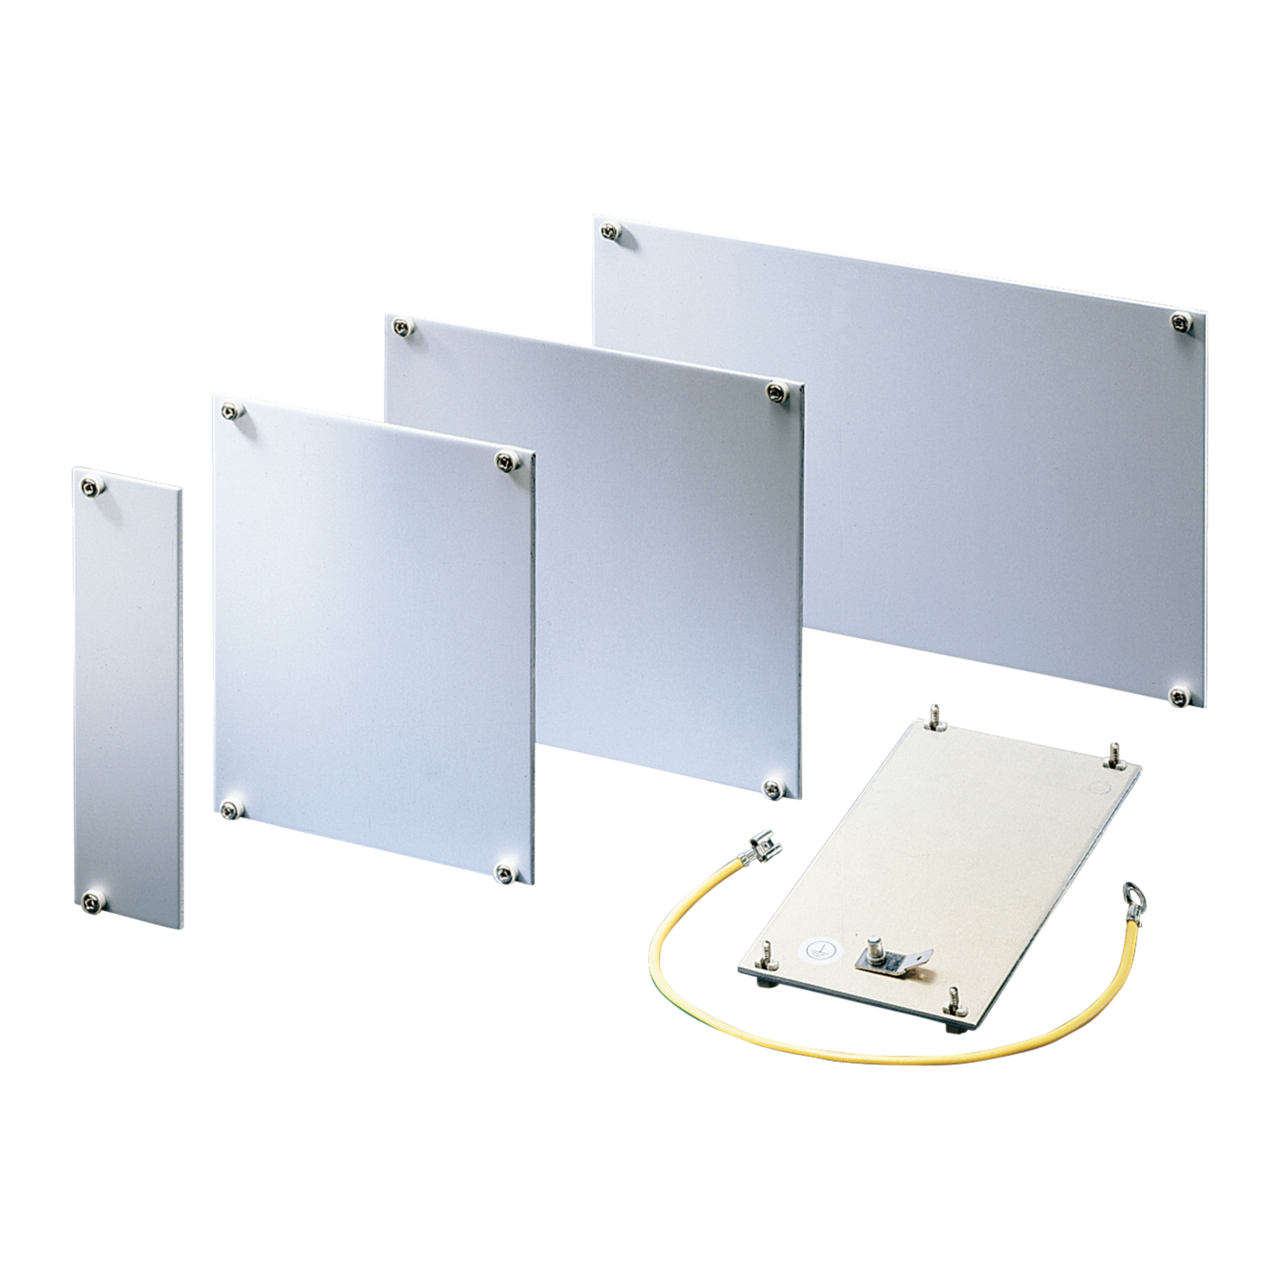 Image for Front panel, front anodized, rear passivated, unshielded, grounded from nVent SCHROFF | Europe, Middle East, Africa and India